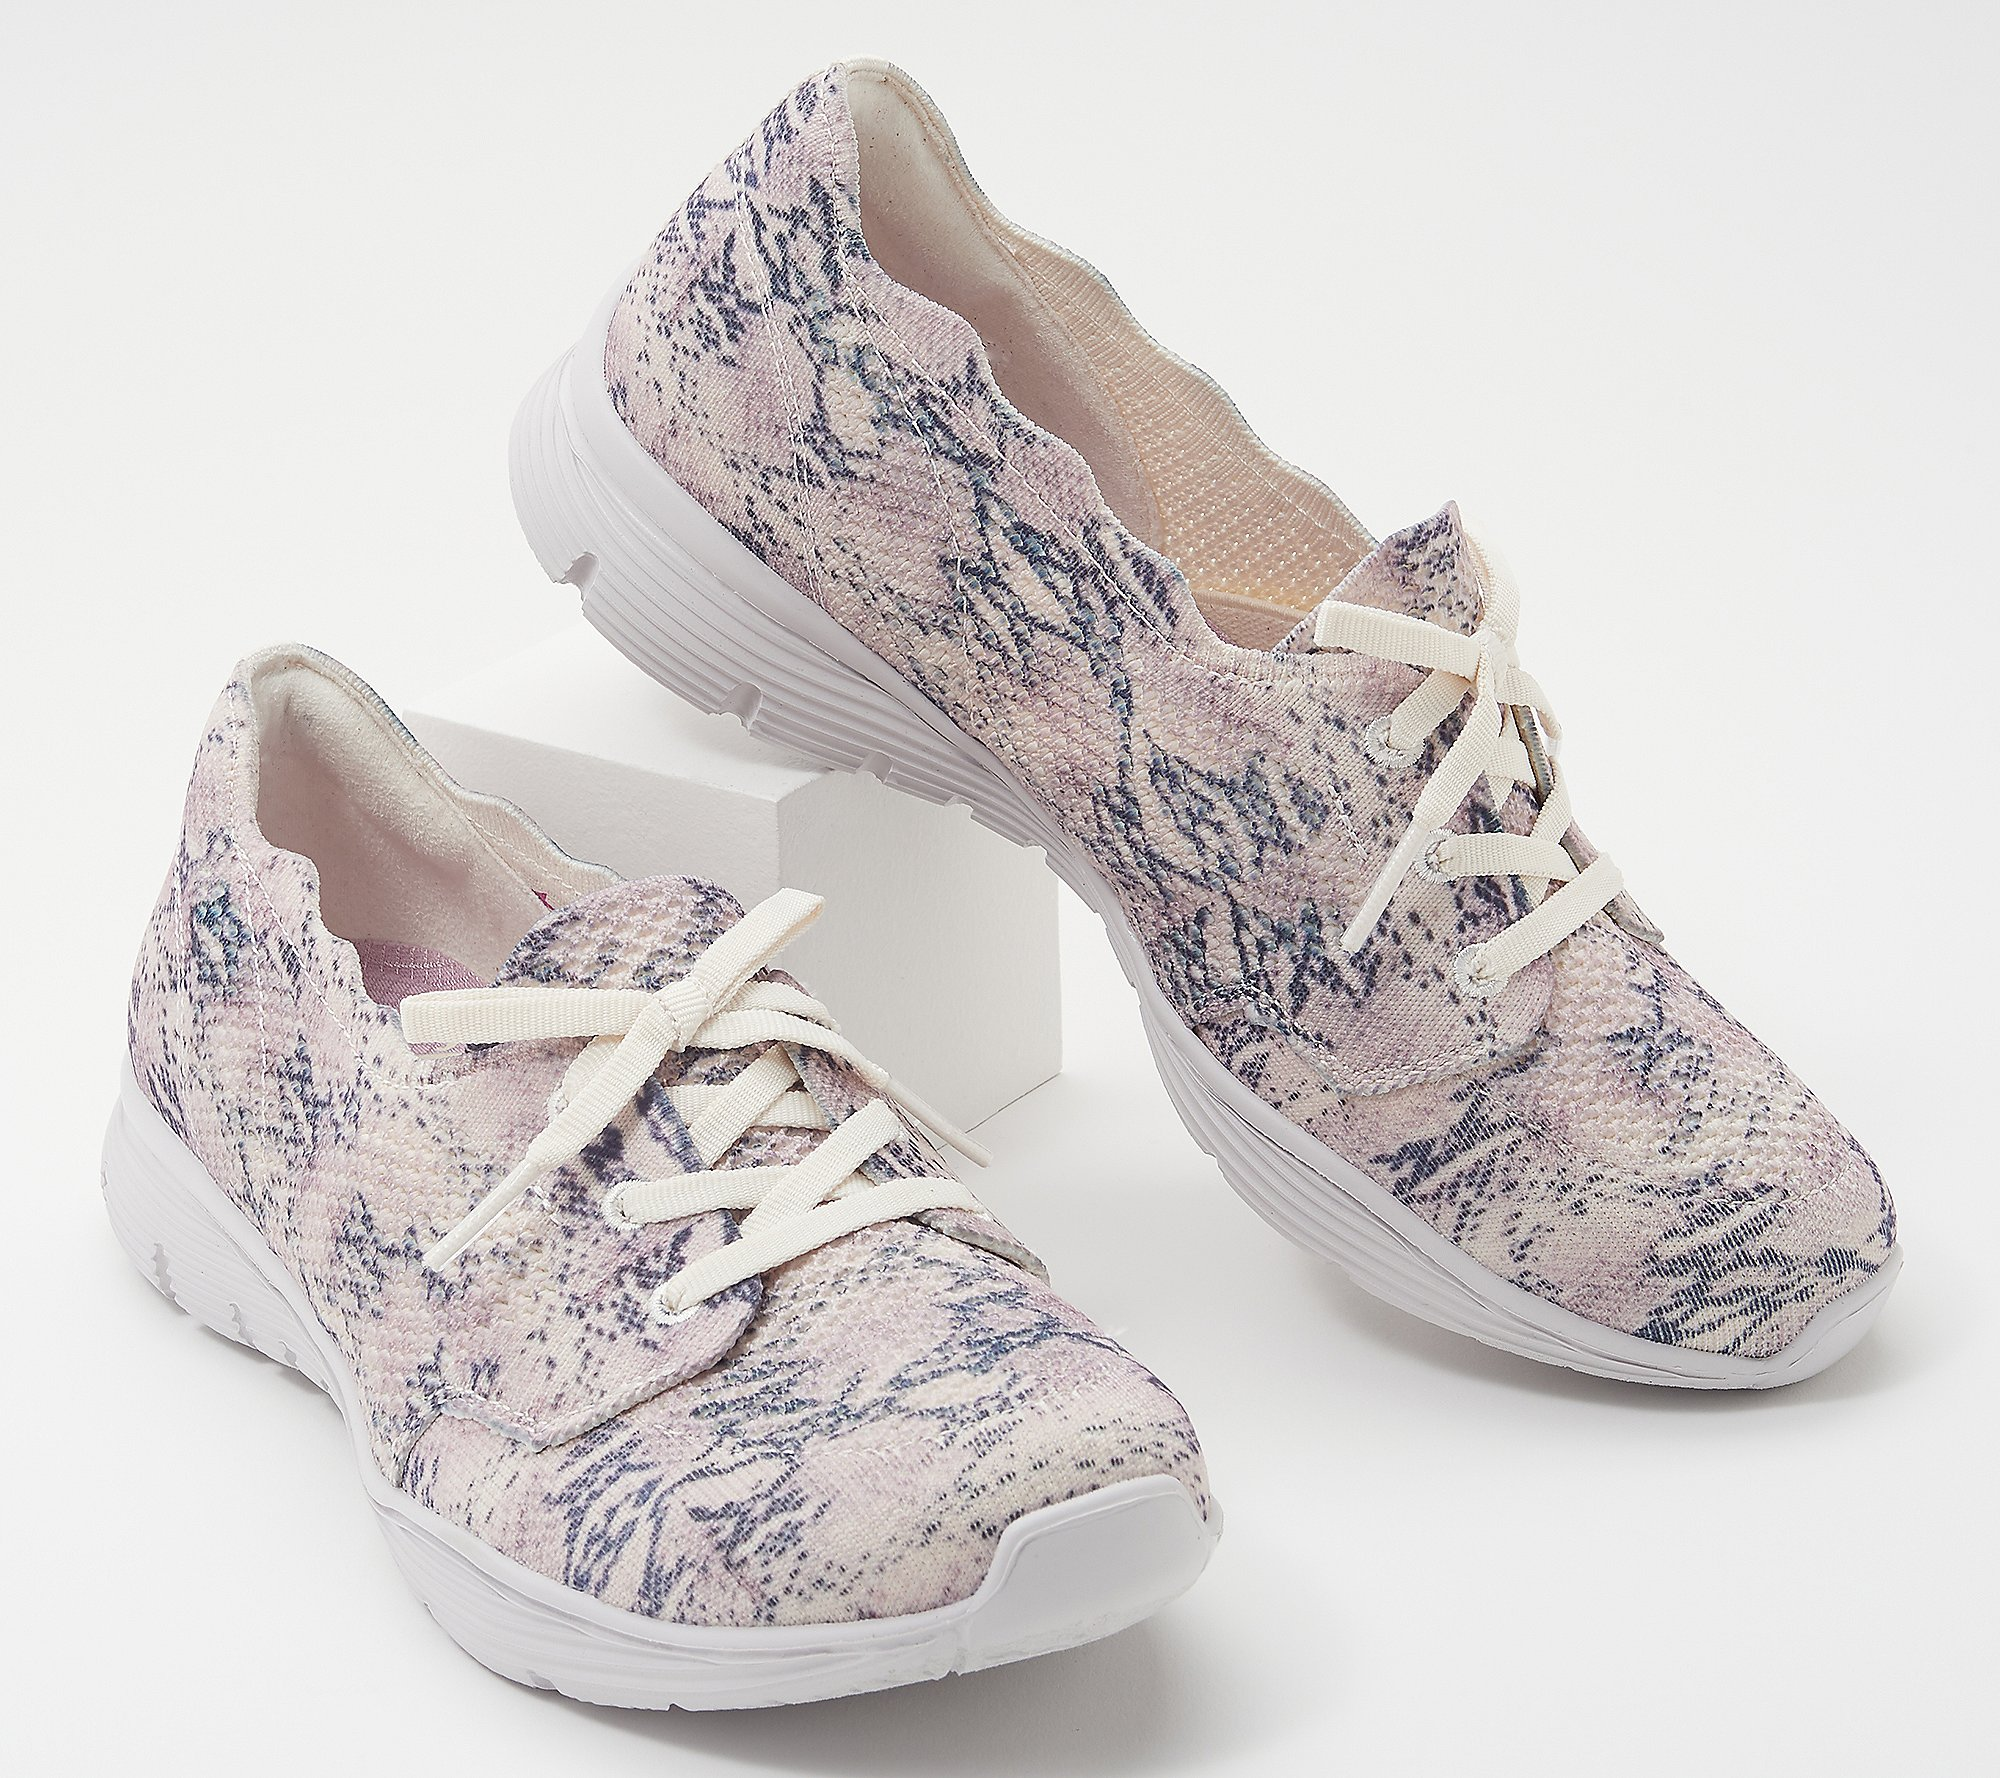 Skechers Washable Knit Slip On Shoes Seager In A Knit Qvc Com